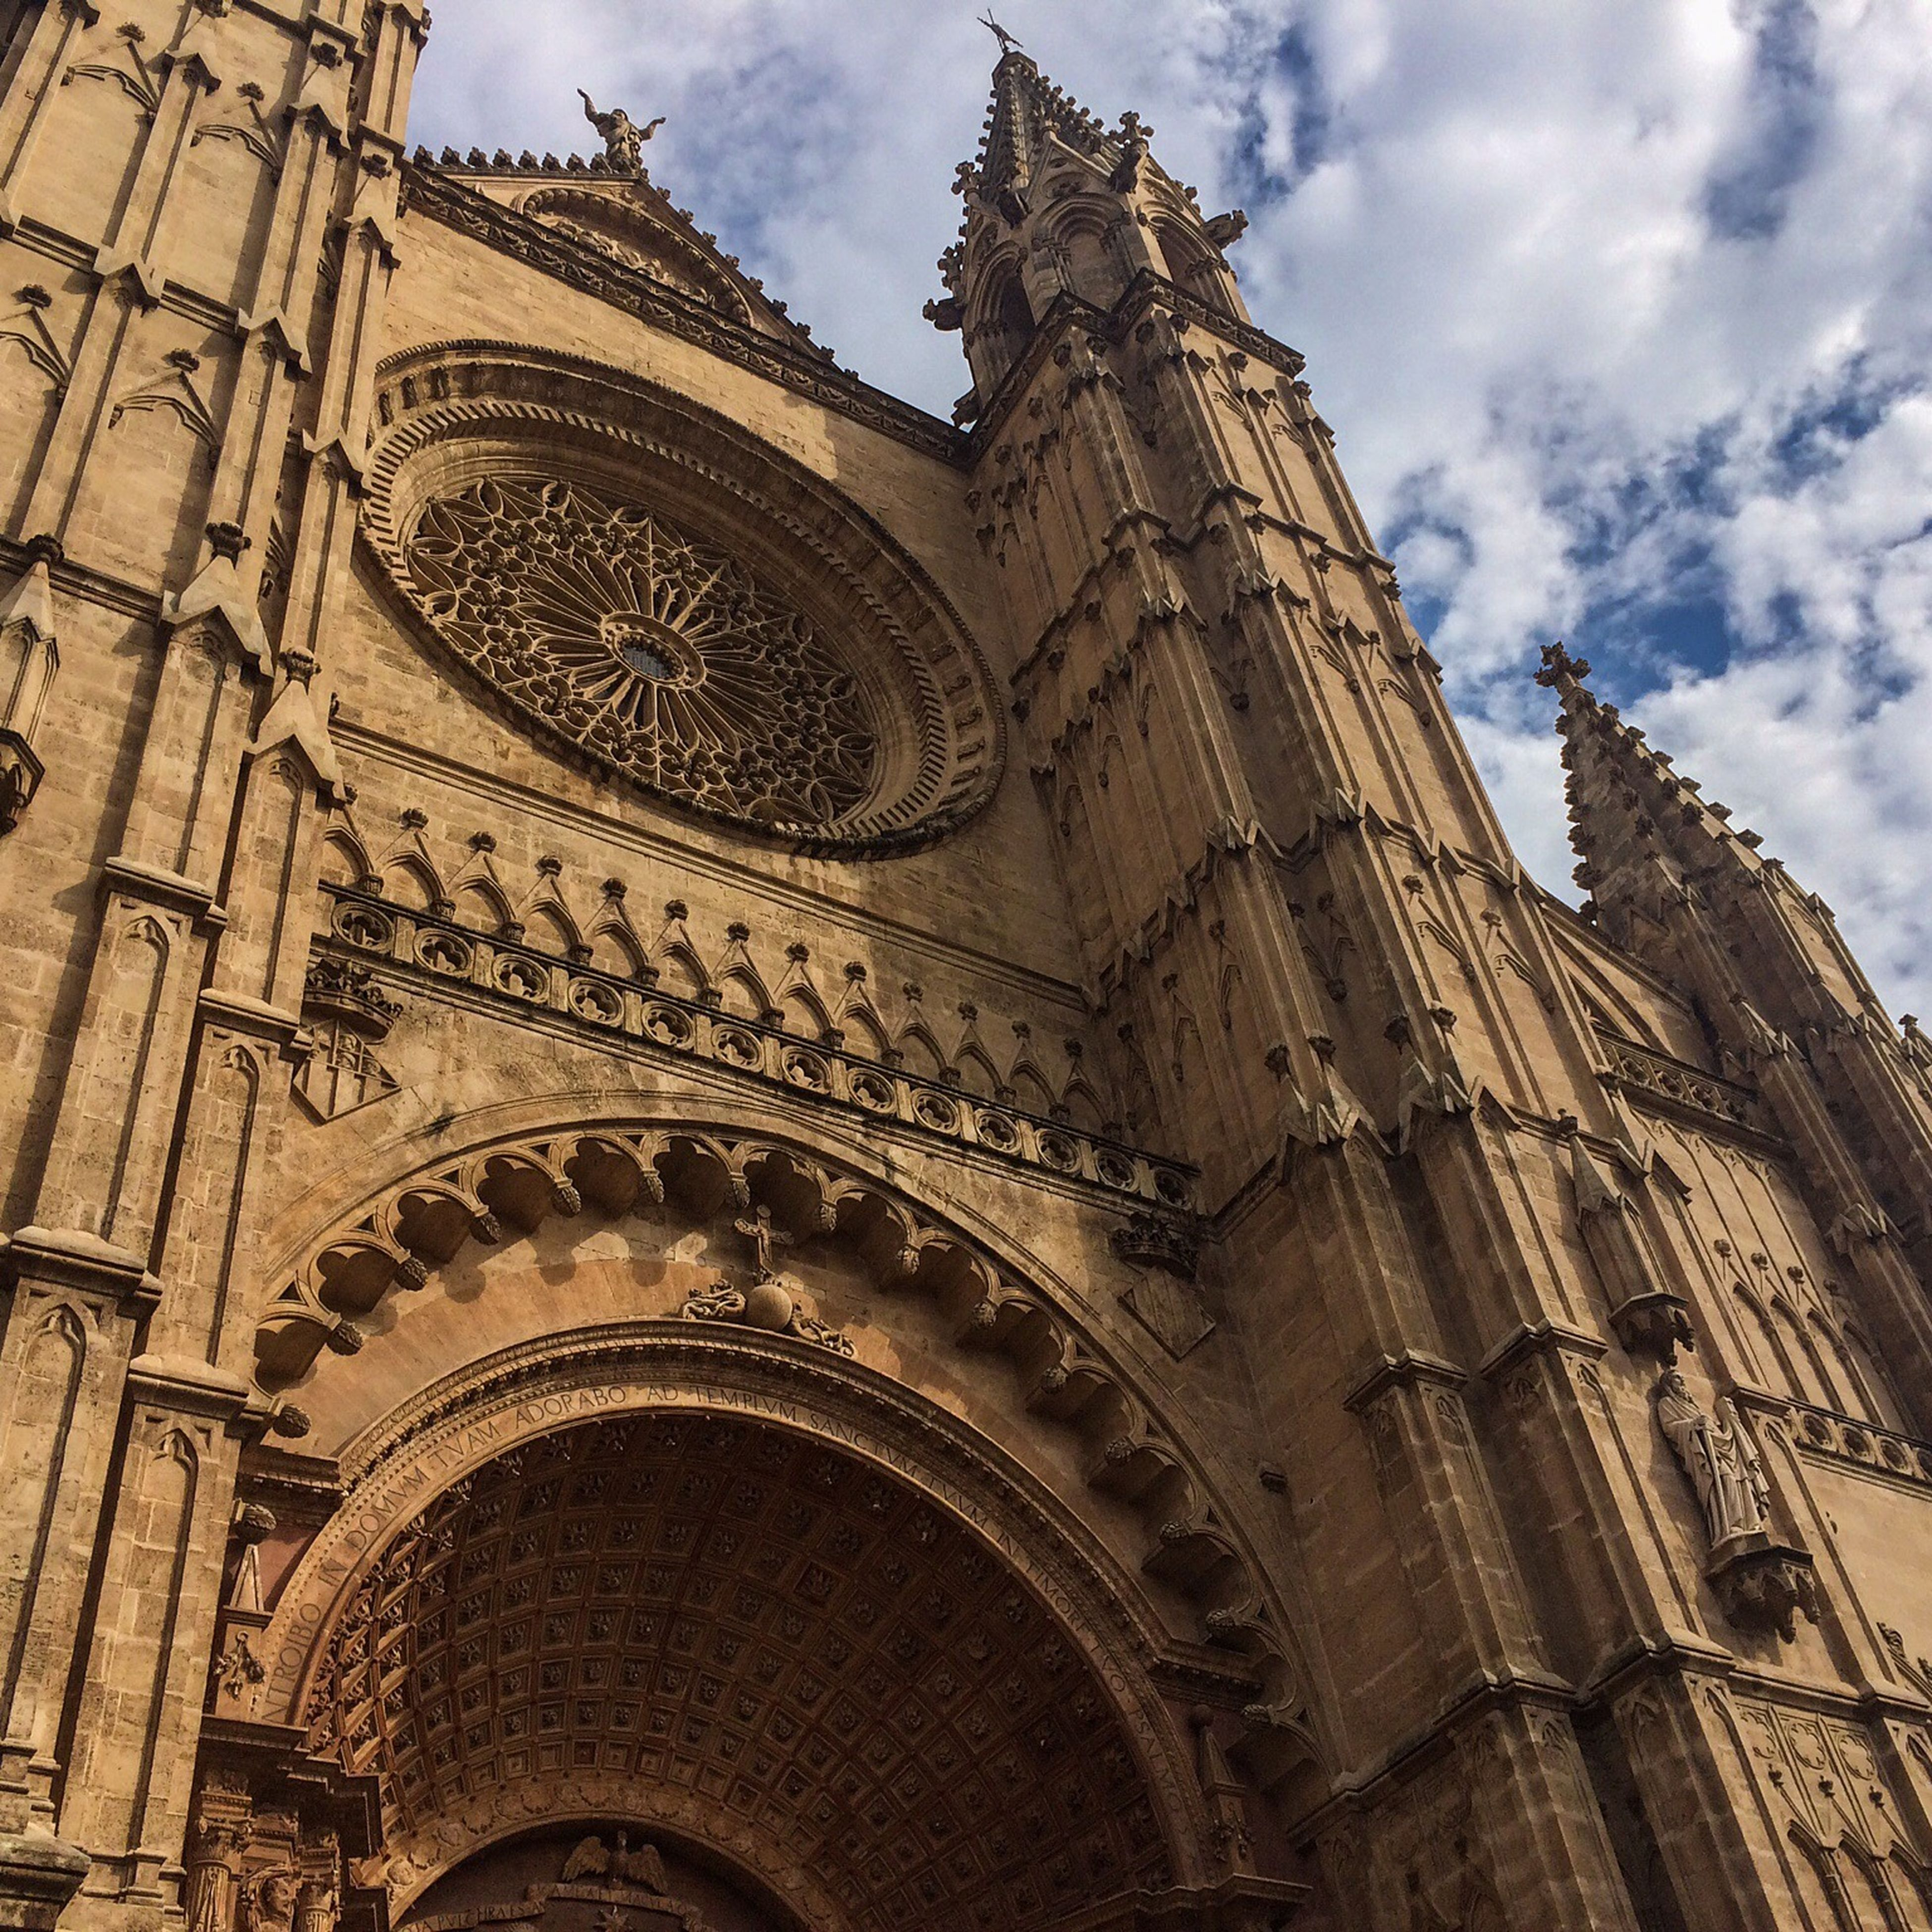 architecture, built structure, low angle view, place of worship, religion, building exterior, spirituality, famous place, sky, church, cathedral, travel destinations, history, tourism, travel, international landmark, cloud - sky, arch